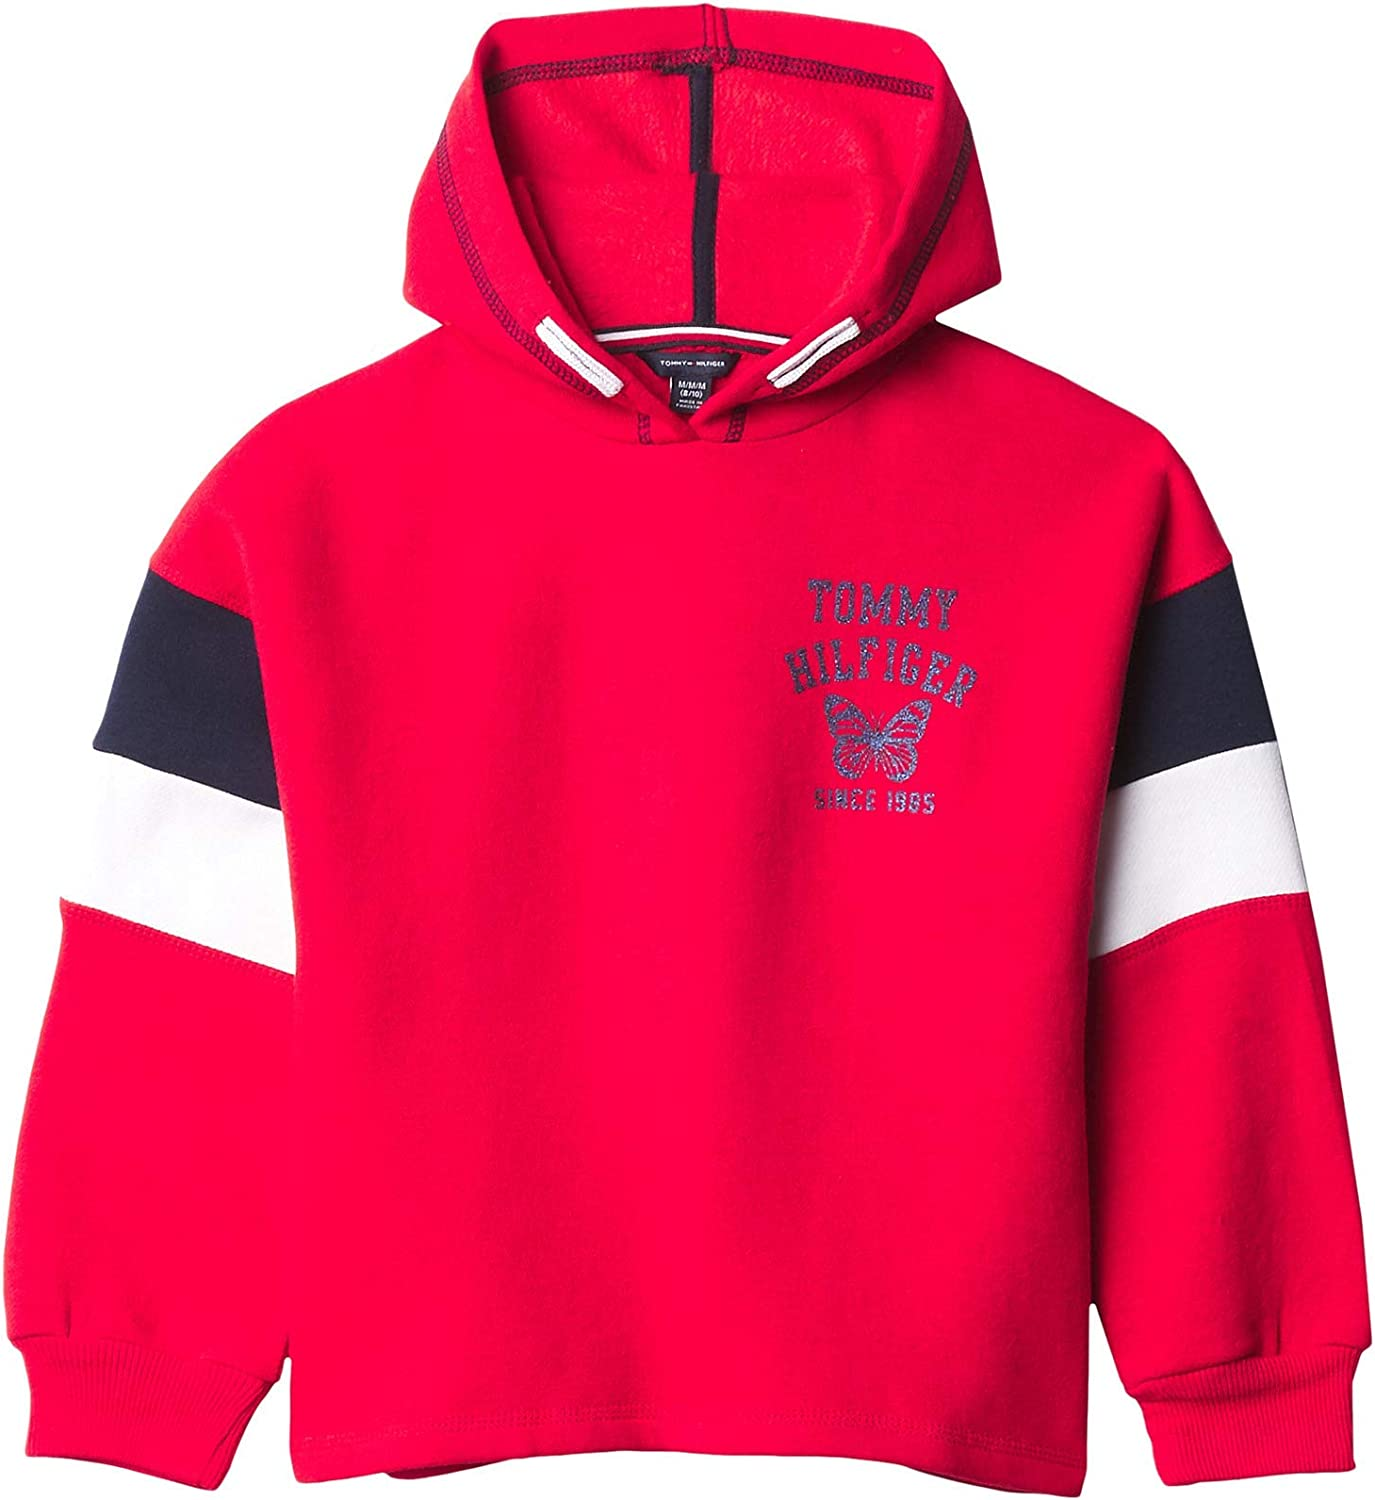 Tommy free Hilfiger Girls' Sale Special Price Full Fashion Hoodie Zip